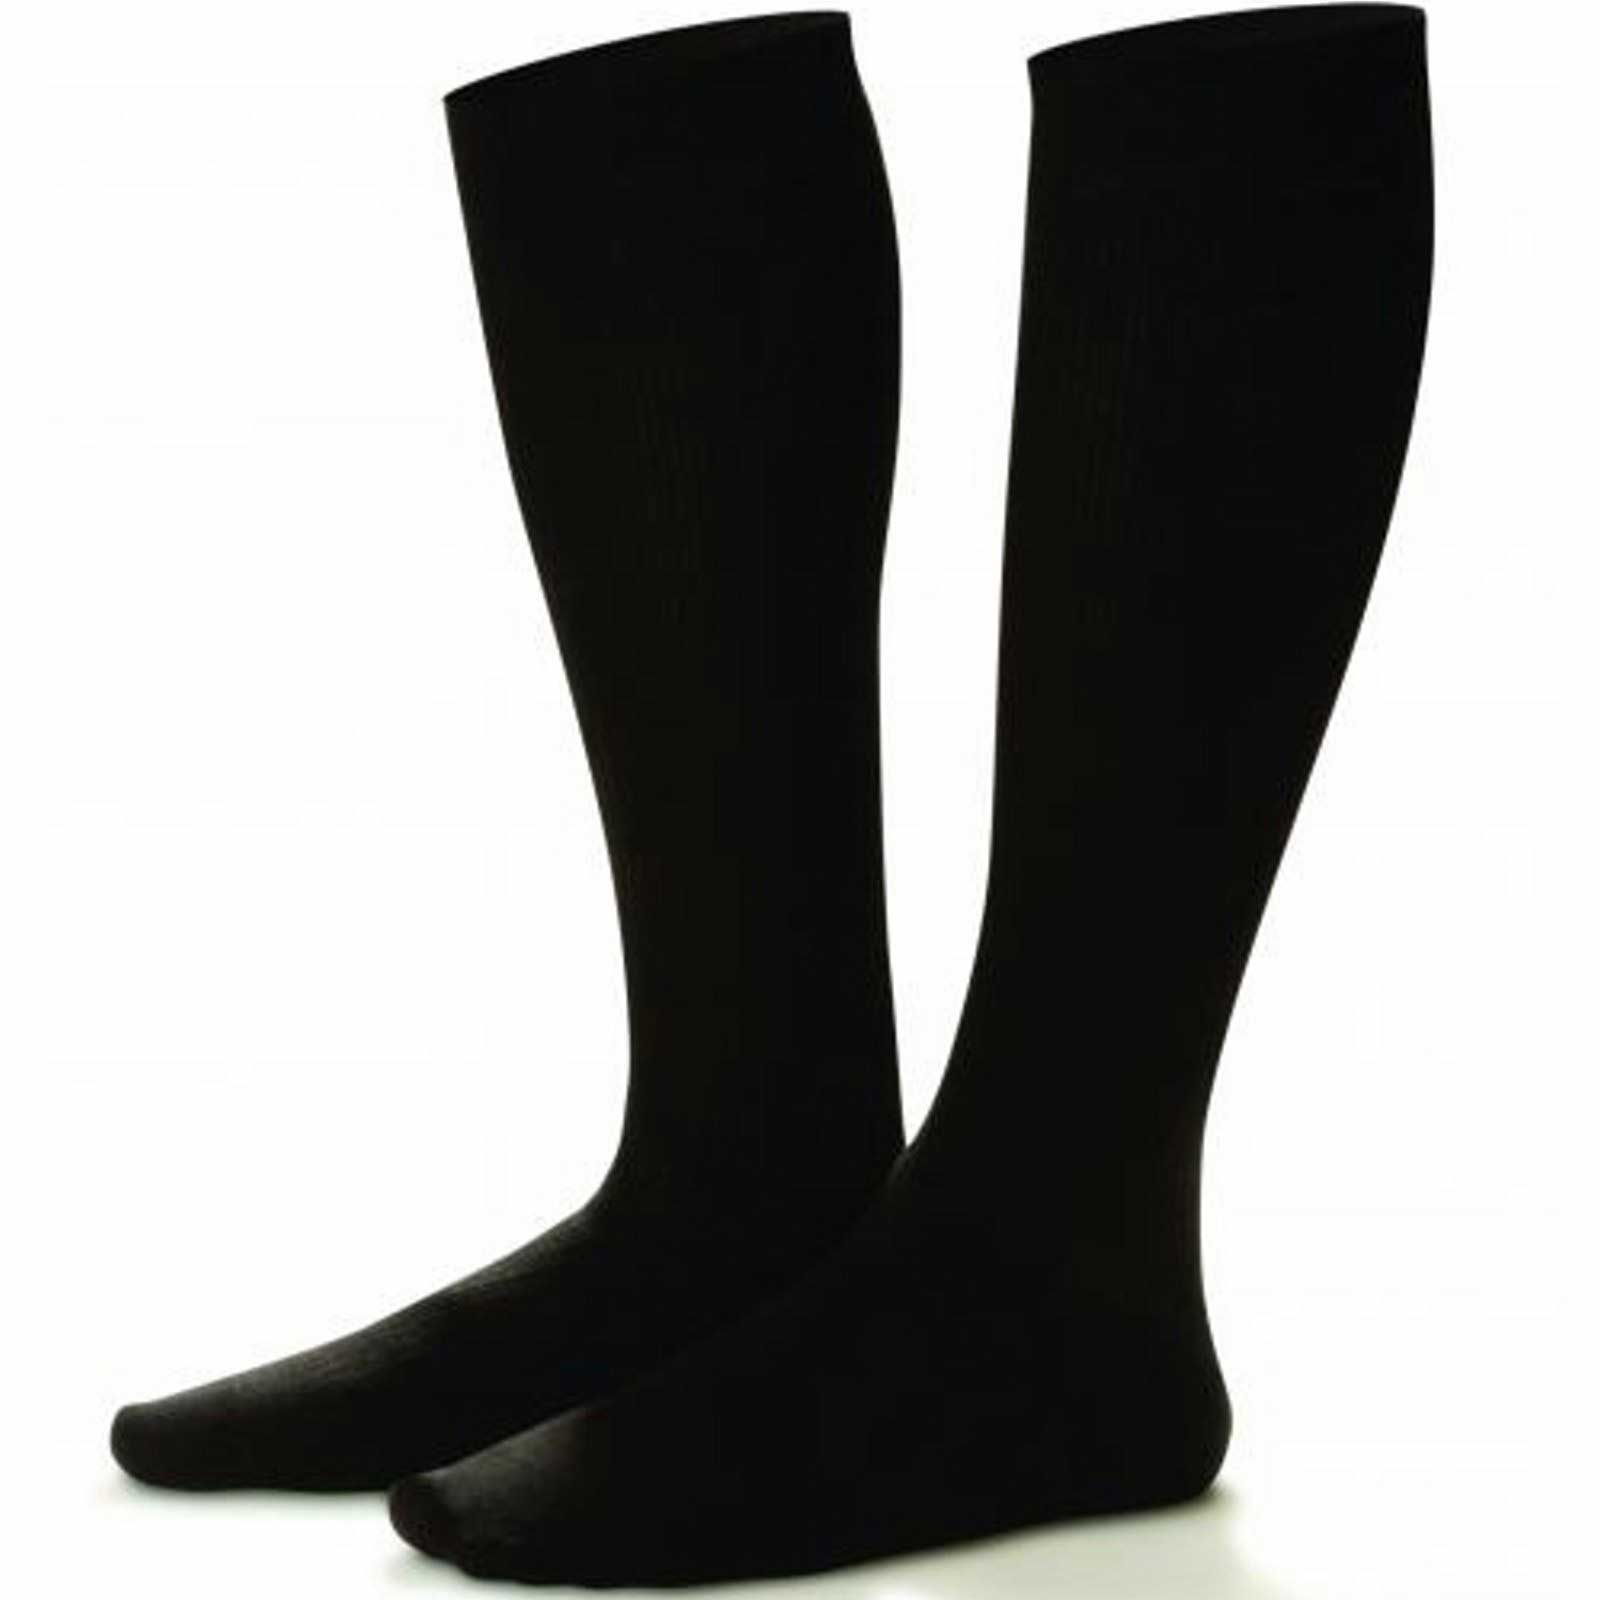 Dr. Comfort - Cotton, Dress, Compression (20-30) Socks